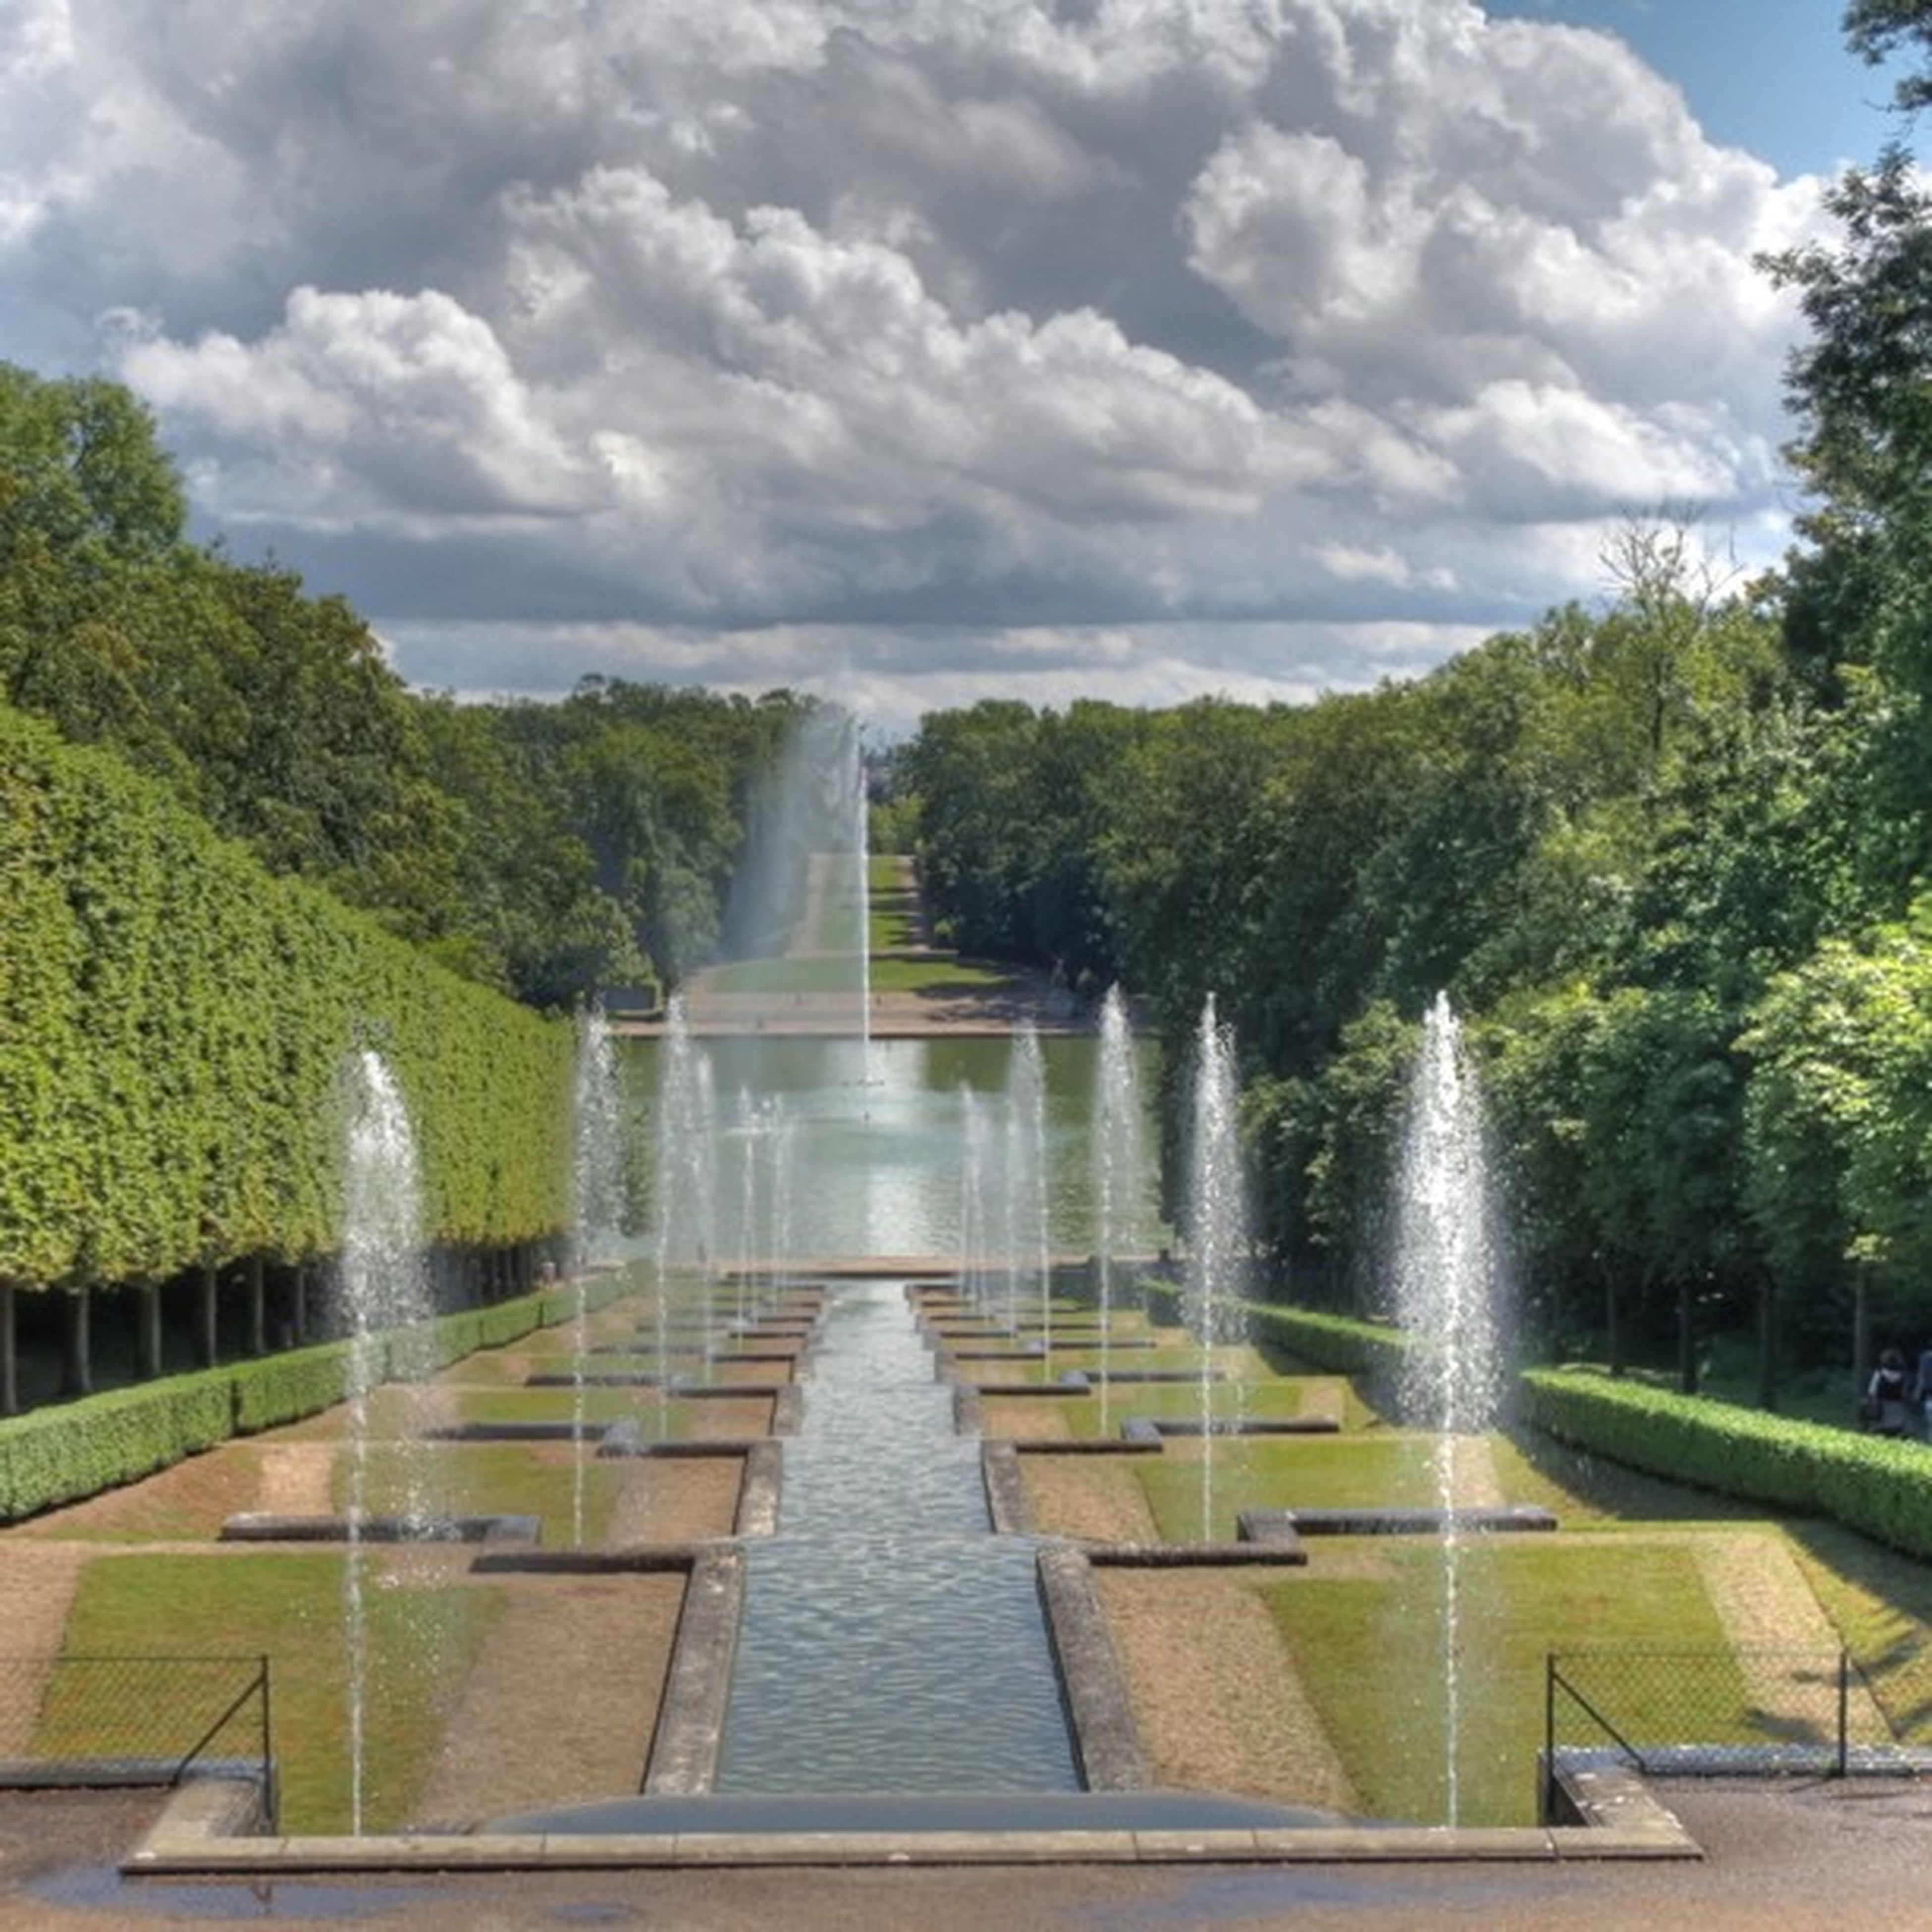 water, tree, sky, cloud - sky, built structure, fountain, architecture, green color, cloudy, nature, river, beauty in nature, cloud, railing, day, scenics, growth, bridge - man made structure, park - man made space, tranquility